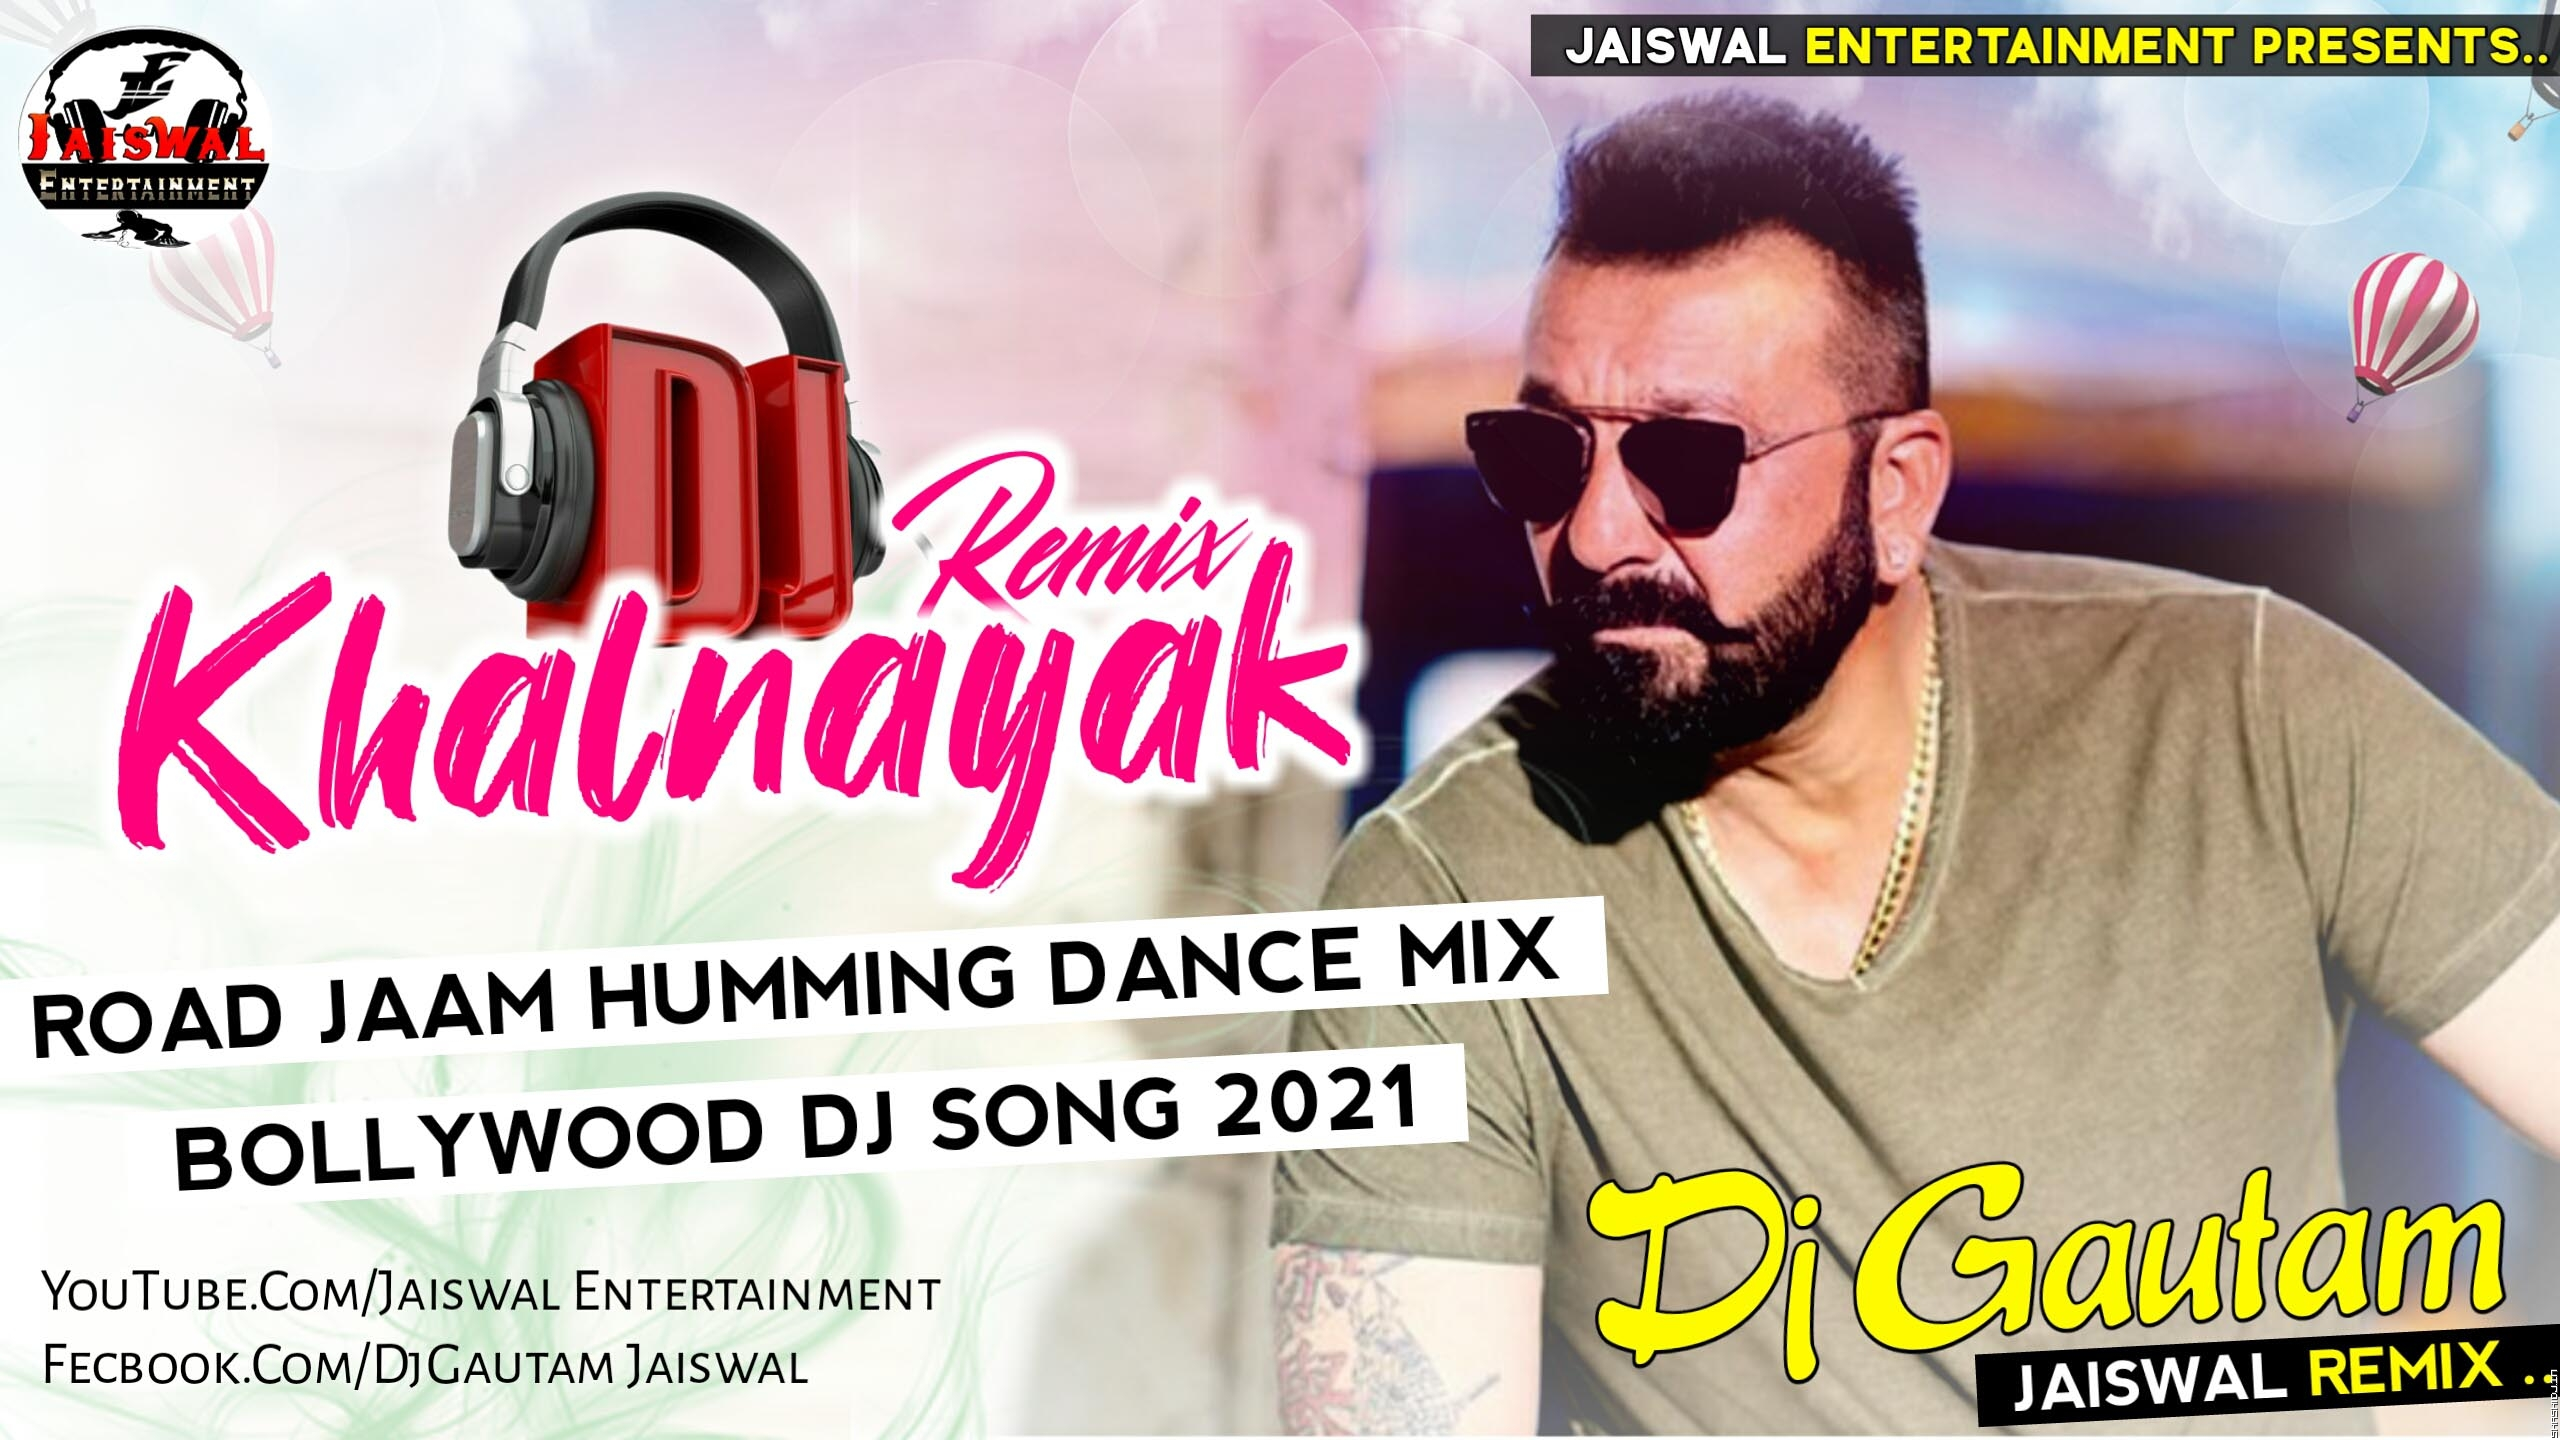 Khalnayak - Sunjay Dutt (Road Jaam Humming Dance Mix) DjGautam Jaiswal.mp3